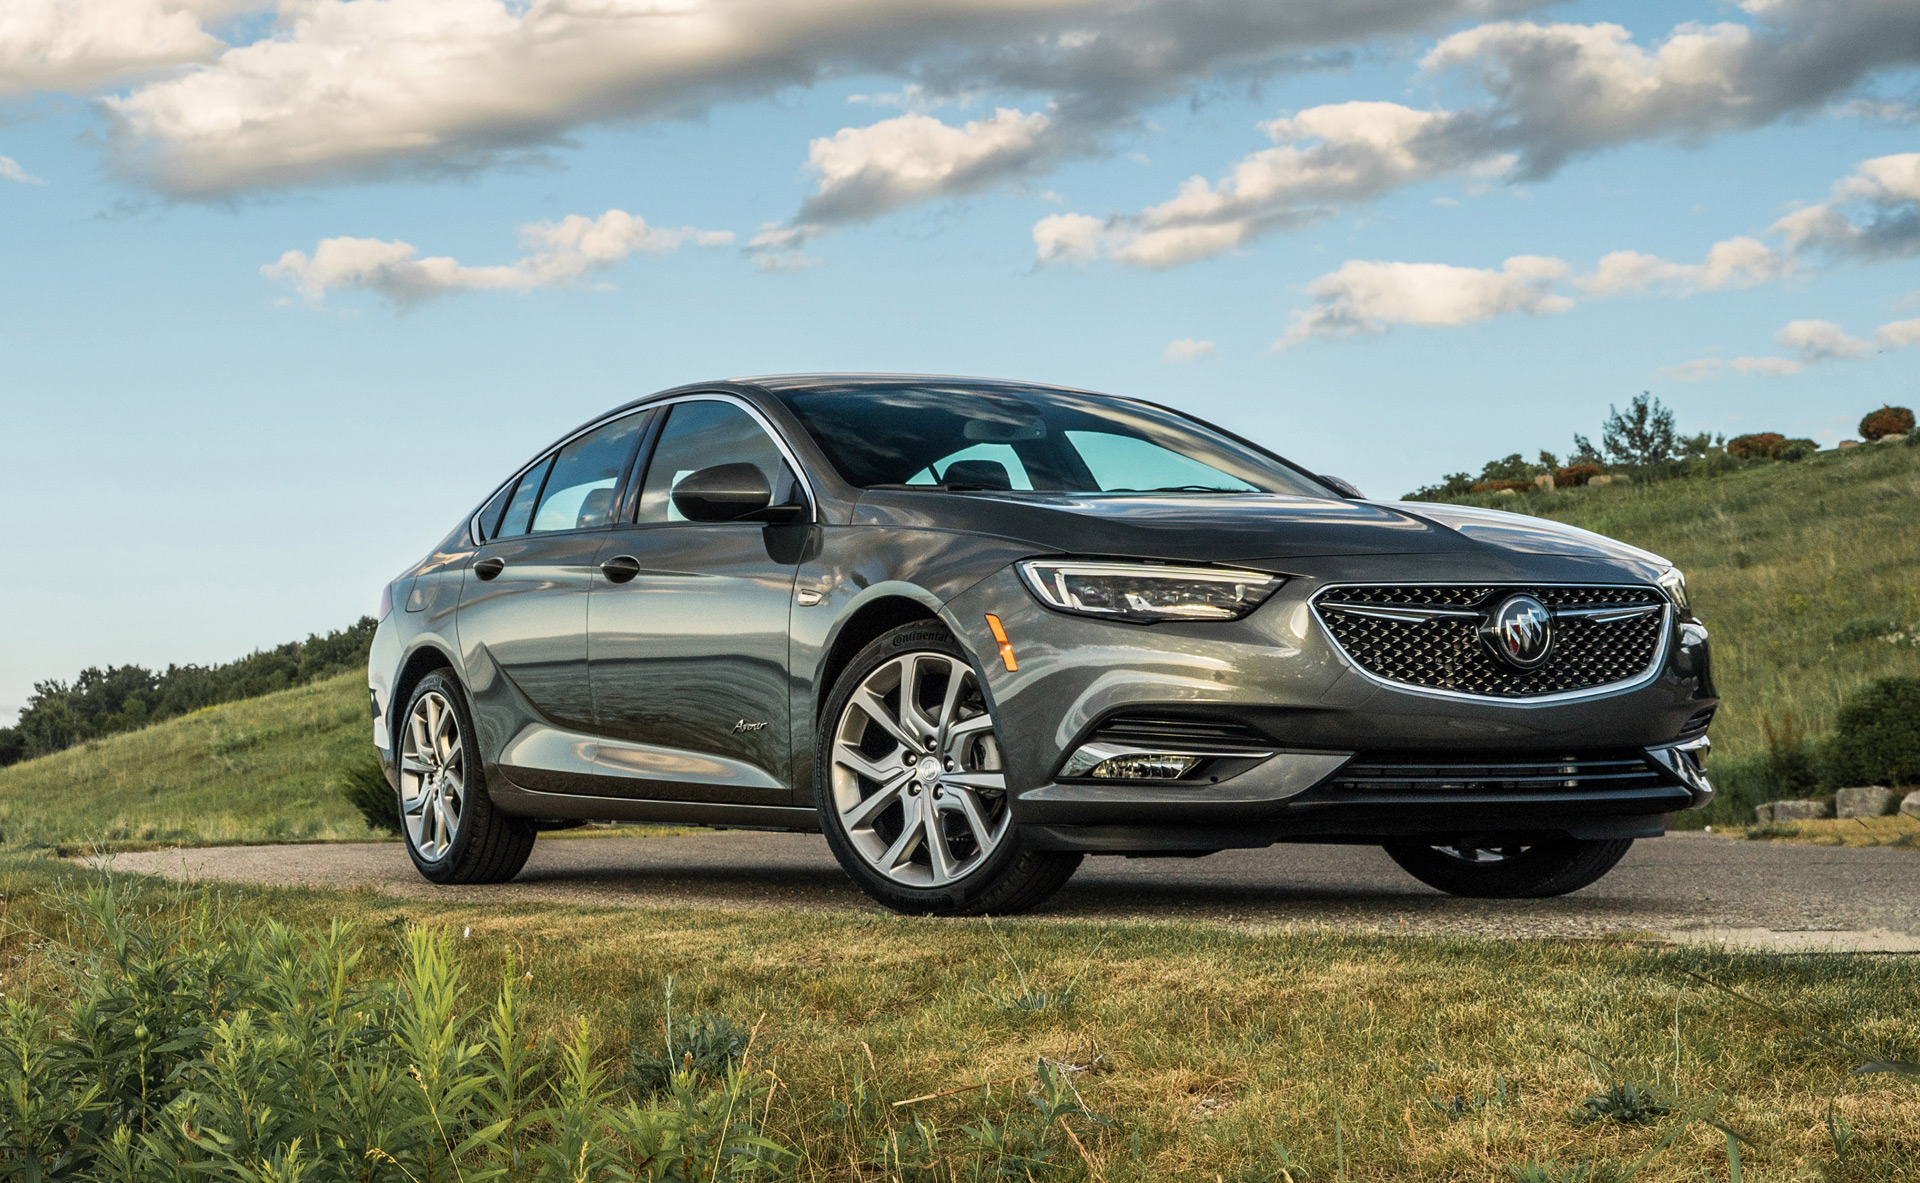 2019 Buick Regal Sportback Avenir: A Mid-Size, Full-Luxe New 2022 Buick Regal Pictures, Price, Reviews